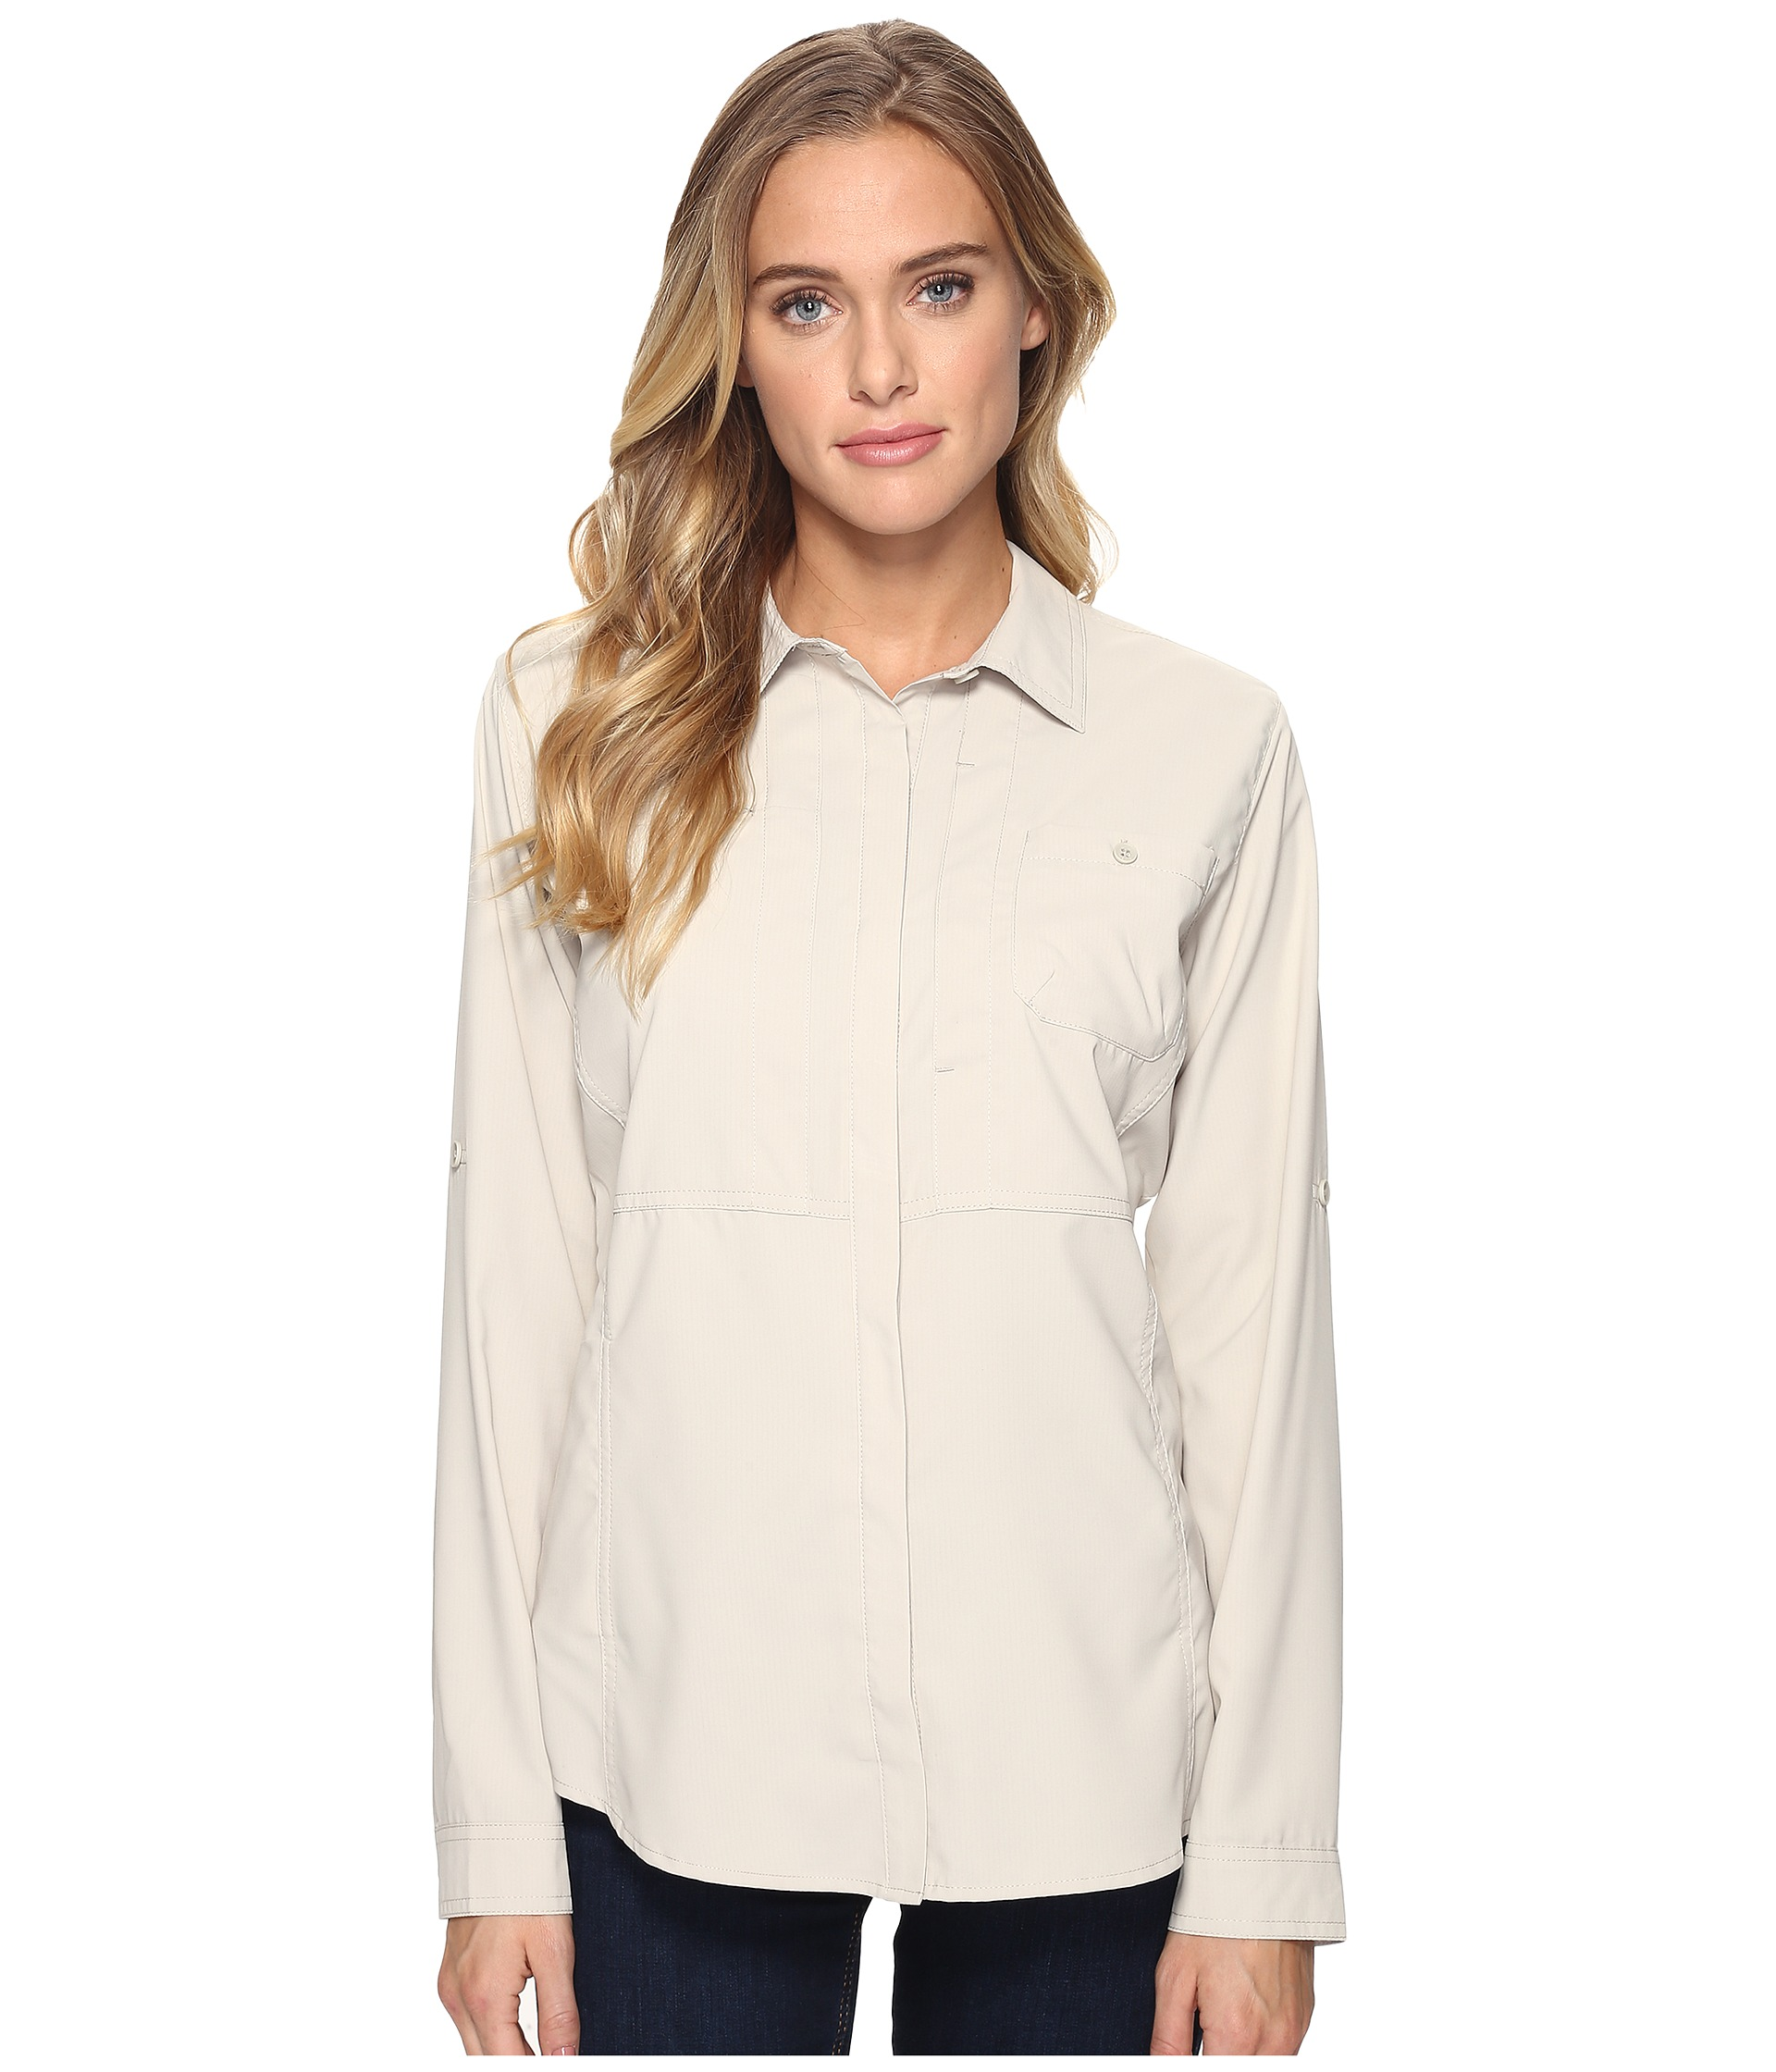 Royal robbins expedition chill long sleeve shirt zappos for Royal robbins expedition shirt 3 4 sleeve women s